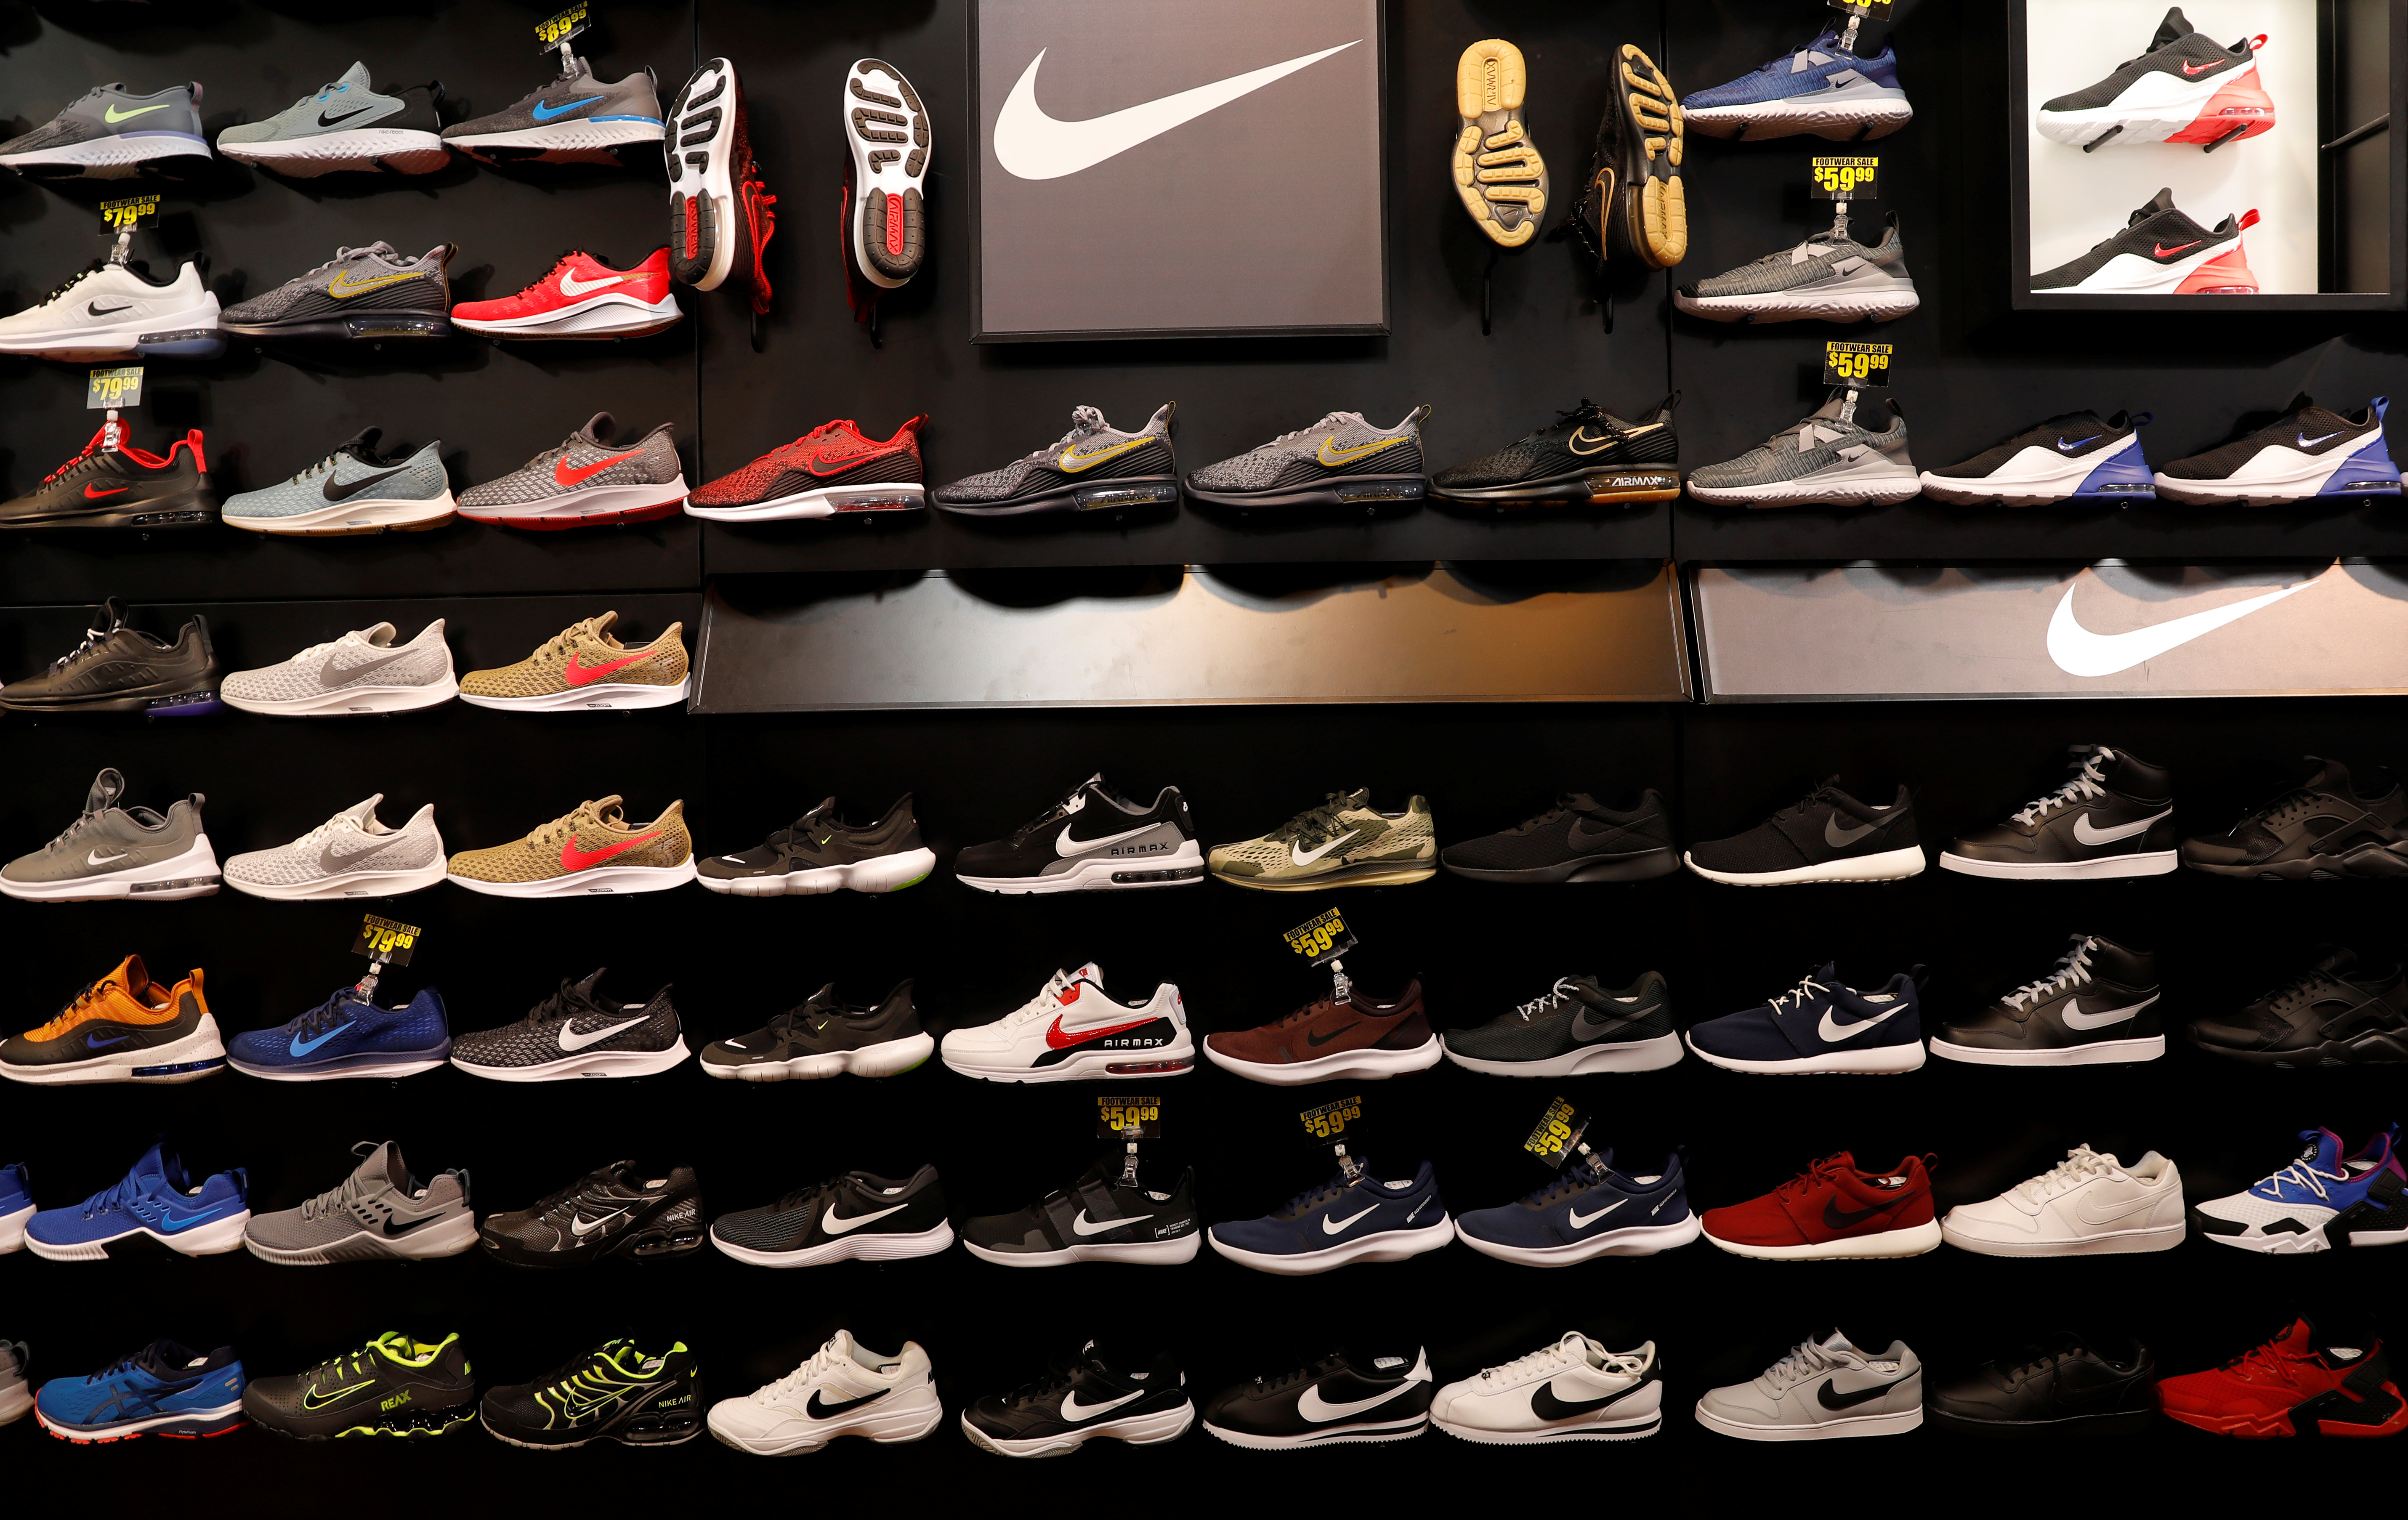 Nike shoes are seen displayed at a sporting goods store in New York City, New York, U.S., May 14, 2019. REUTERS/Mike Segar